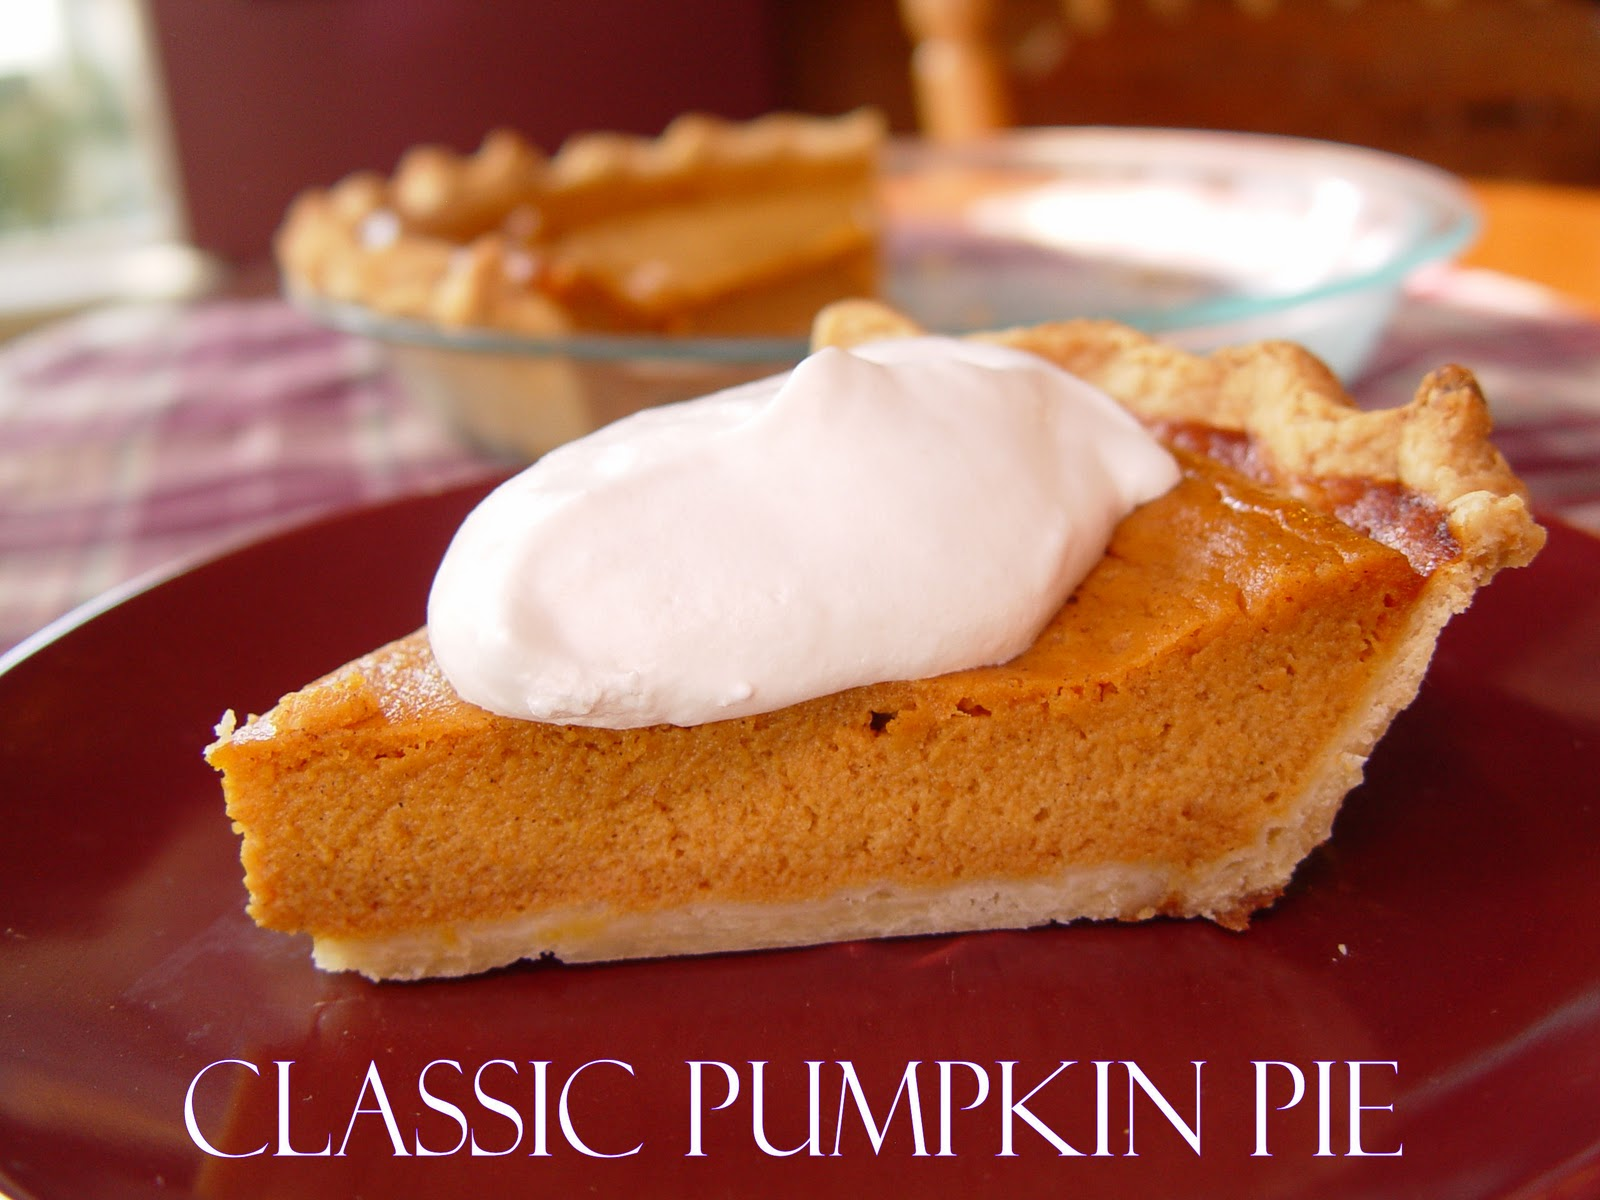 Creamy Pumpkin Pie and Classic Pumpkin Pie